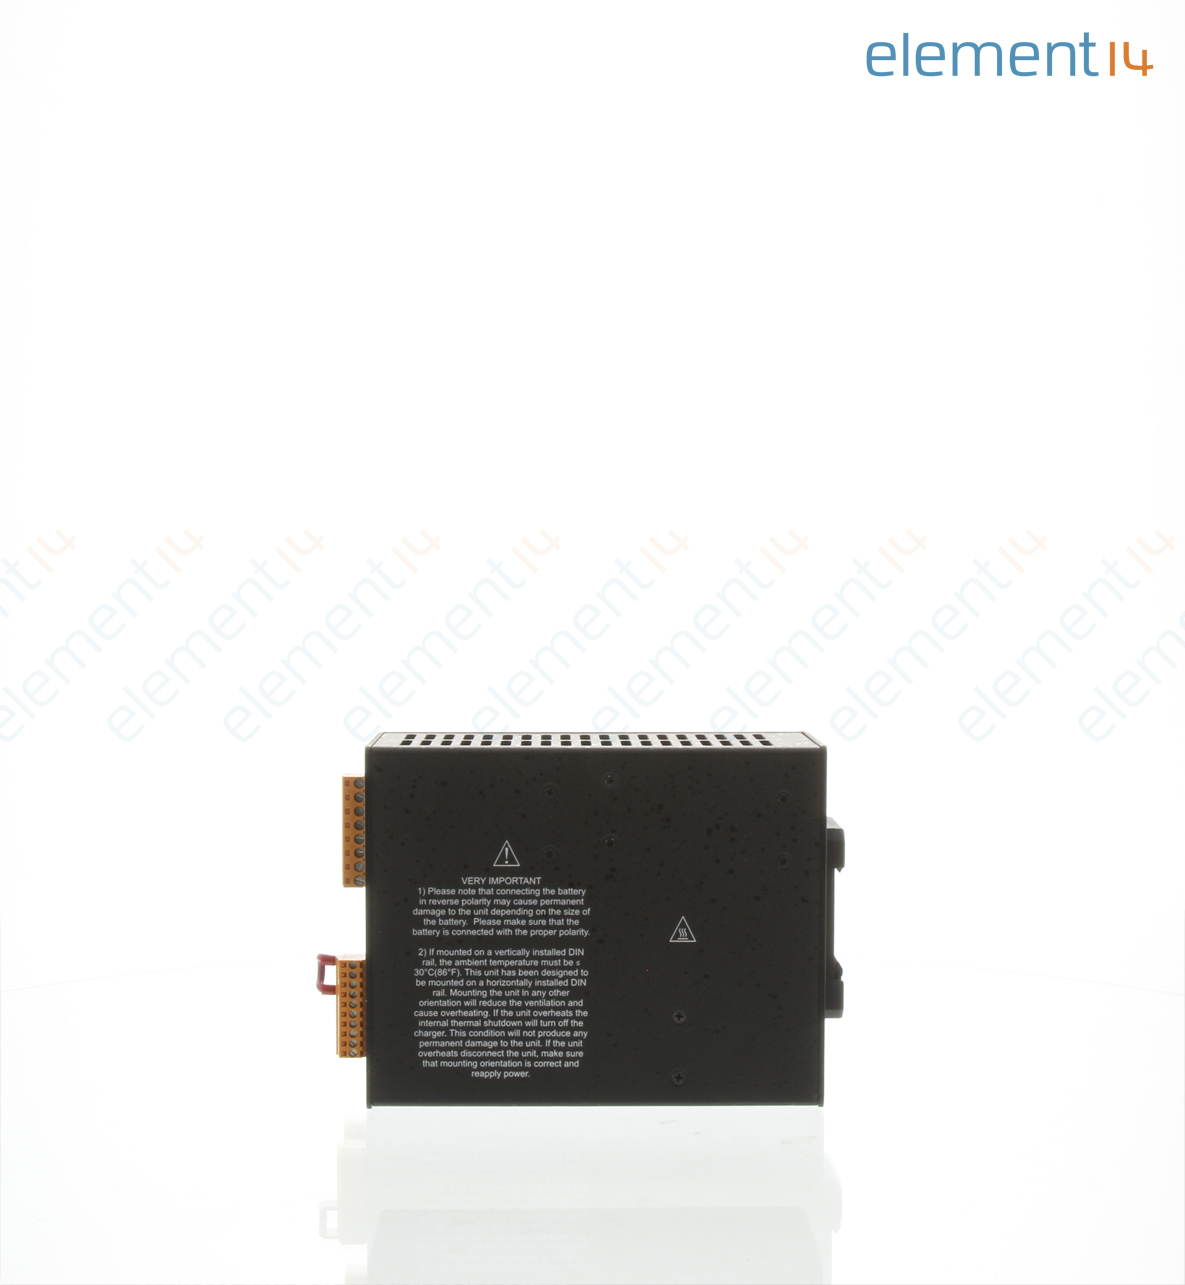 9916280024 Weidmuller Uninterruptible Power Supply Ups Ite 1 Basic Circuit Outlets 360w 265 V 24 Vdc